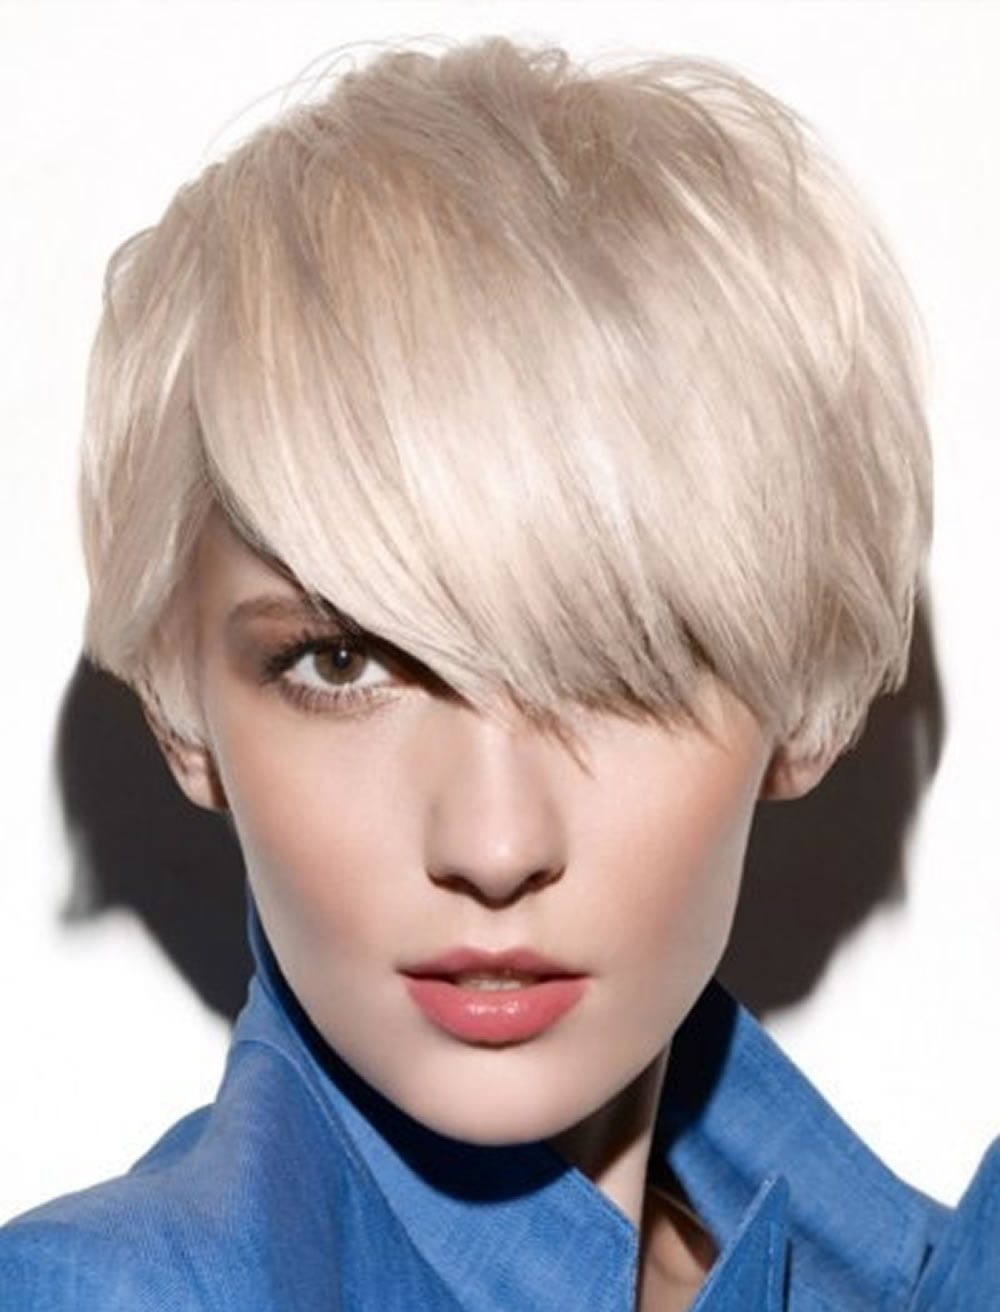 30 Amazing Short Hair Haircuts for Girls 2018-2019 | Page ...